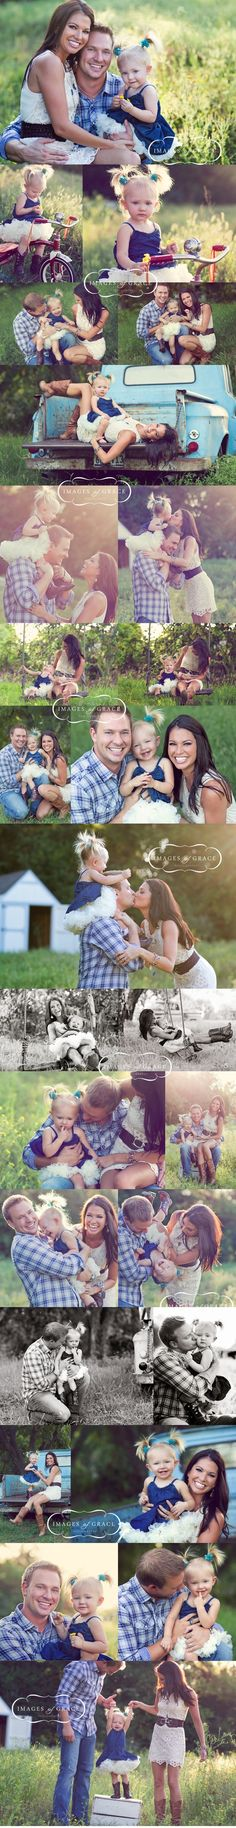 Adorable family photos love melissa rycroft! - Wink Chic